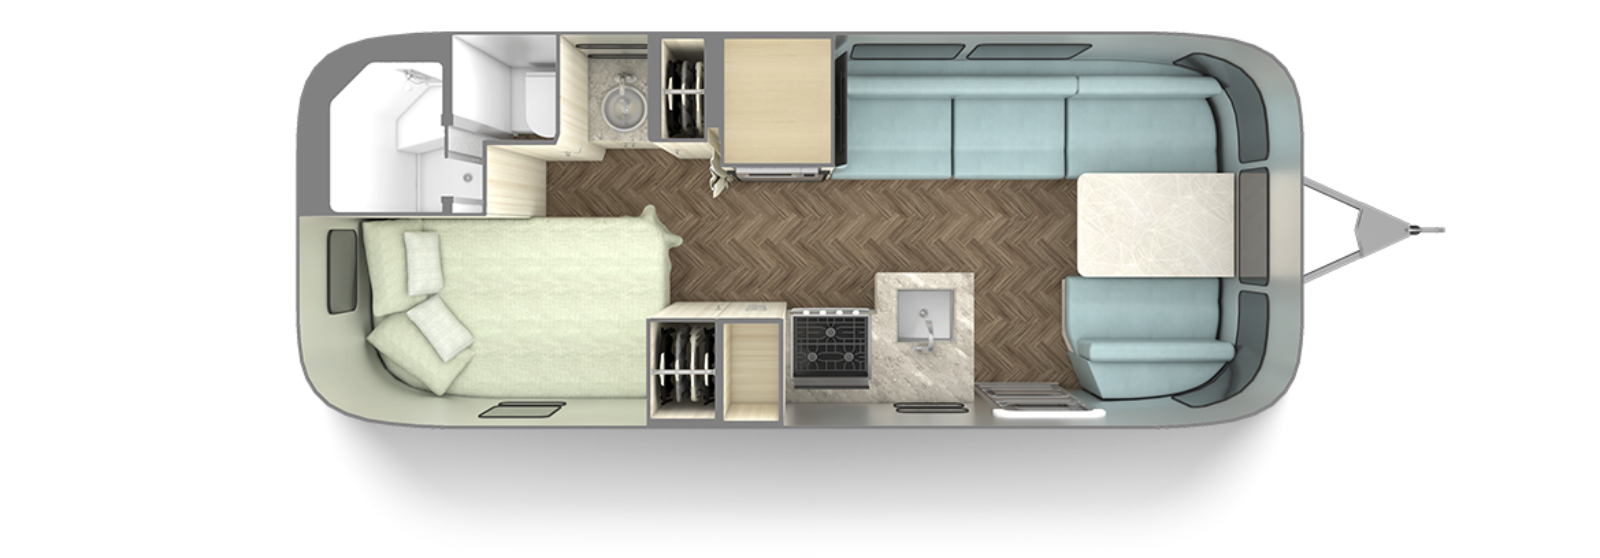 2021-Airstream-International-23CB-Floor-Plan-Aqua